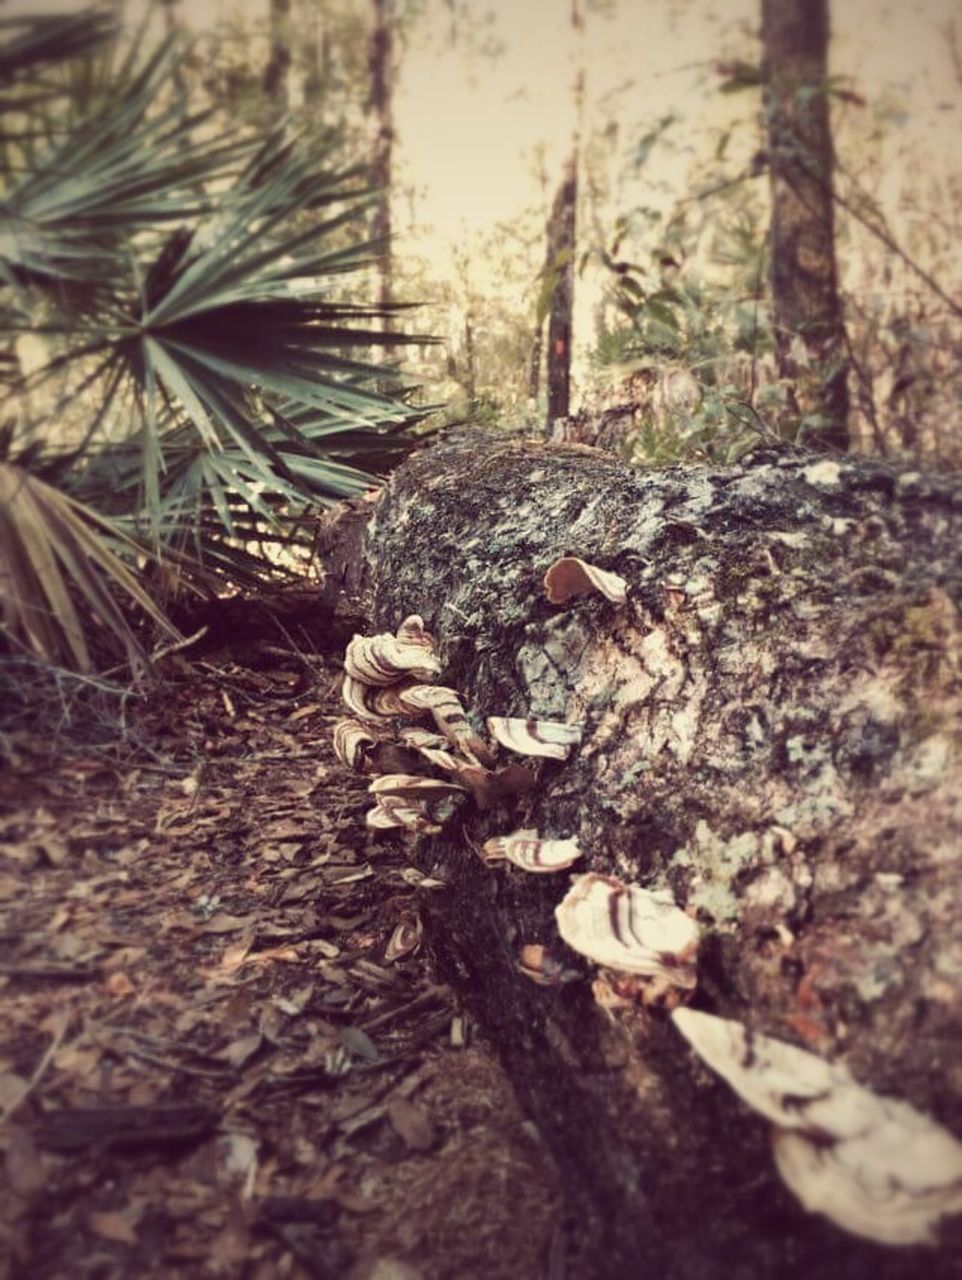 tree trunk, tree, no people, nature, outdoors, day, forest, close-up, textured, growth, dead tree, animal themes